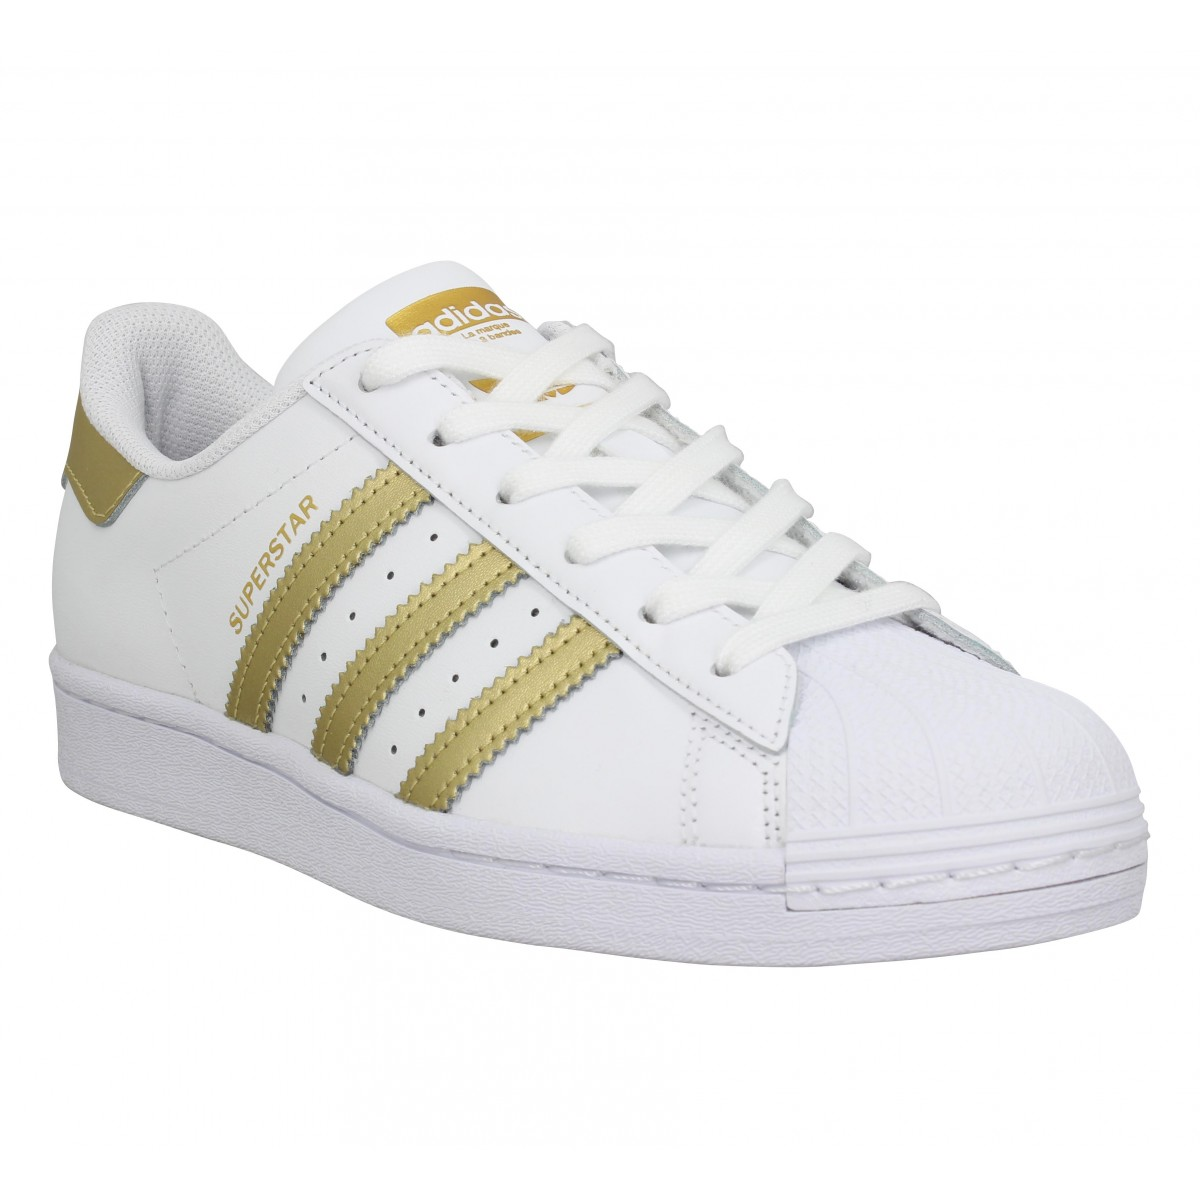 Baskets ADIDAS Superstar FX7483 cuir Femme Blanc Or